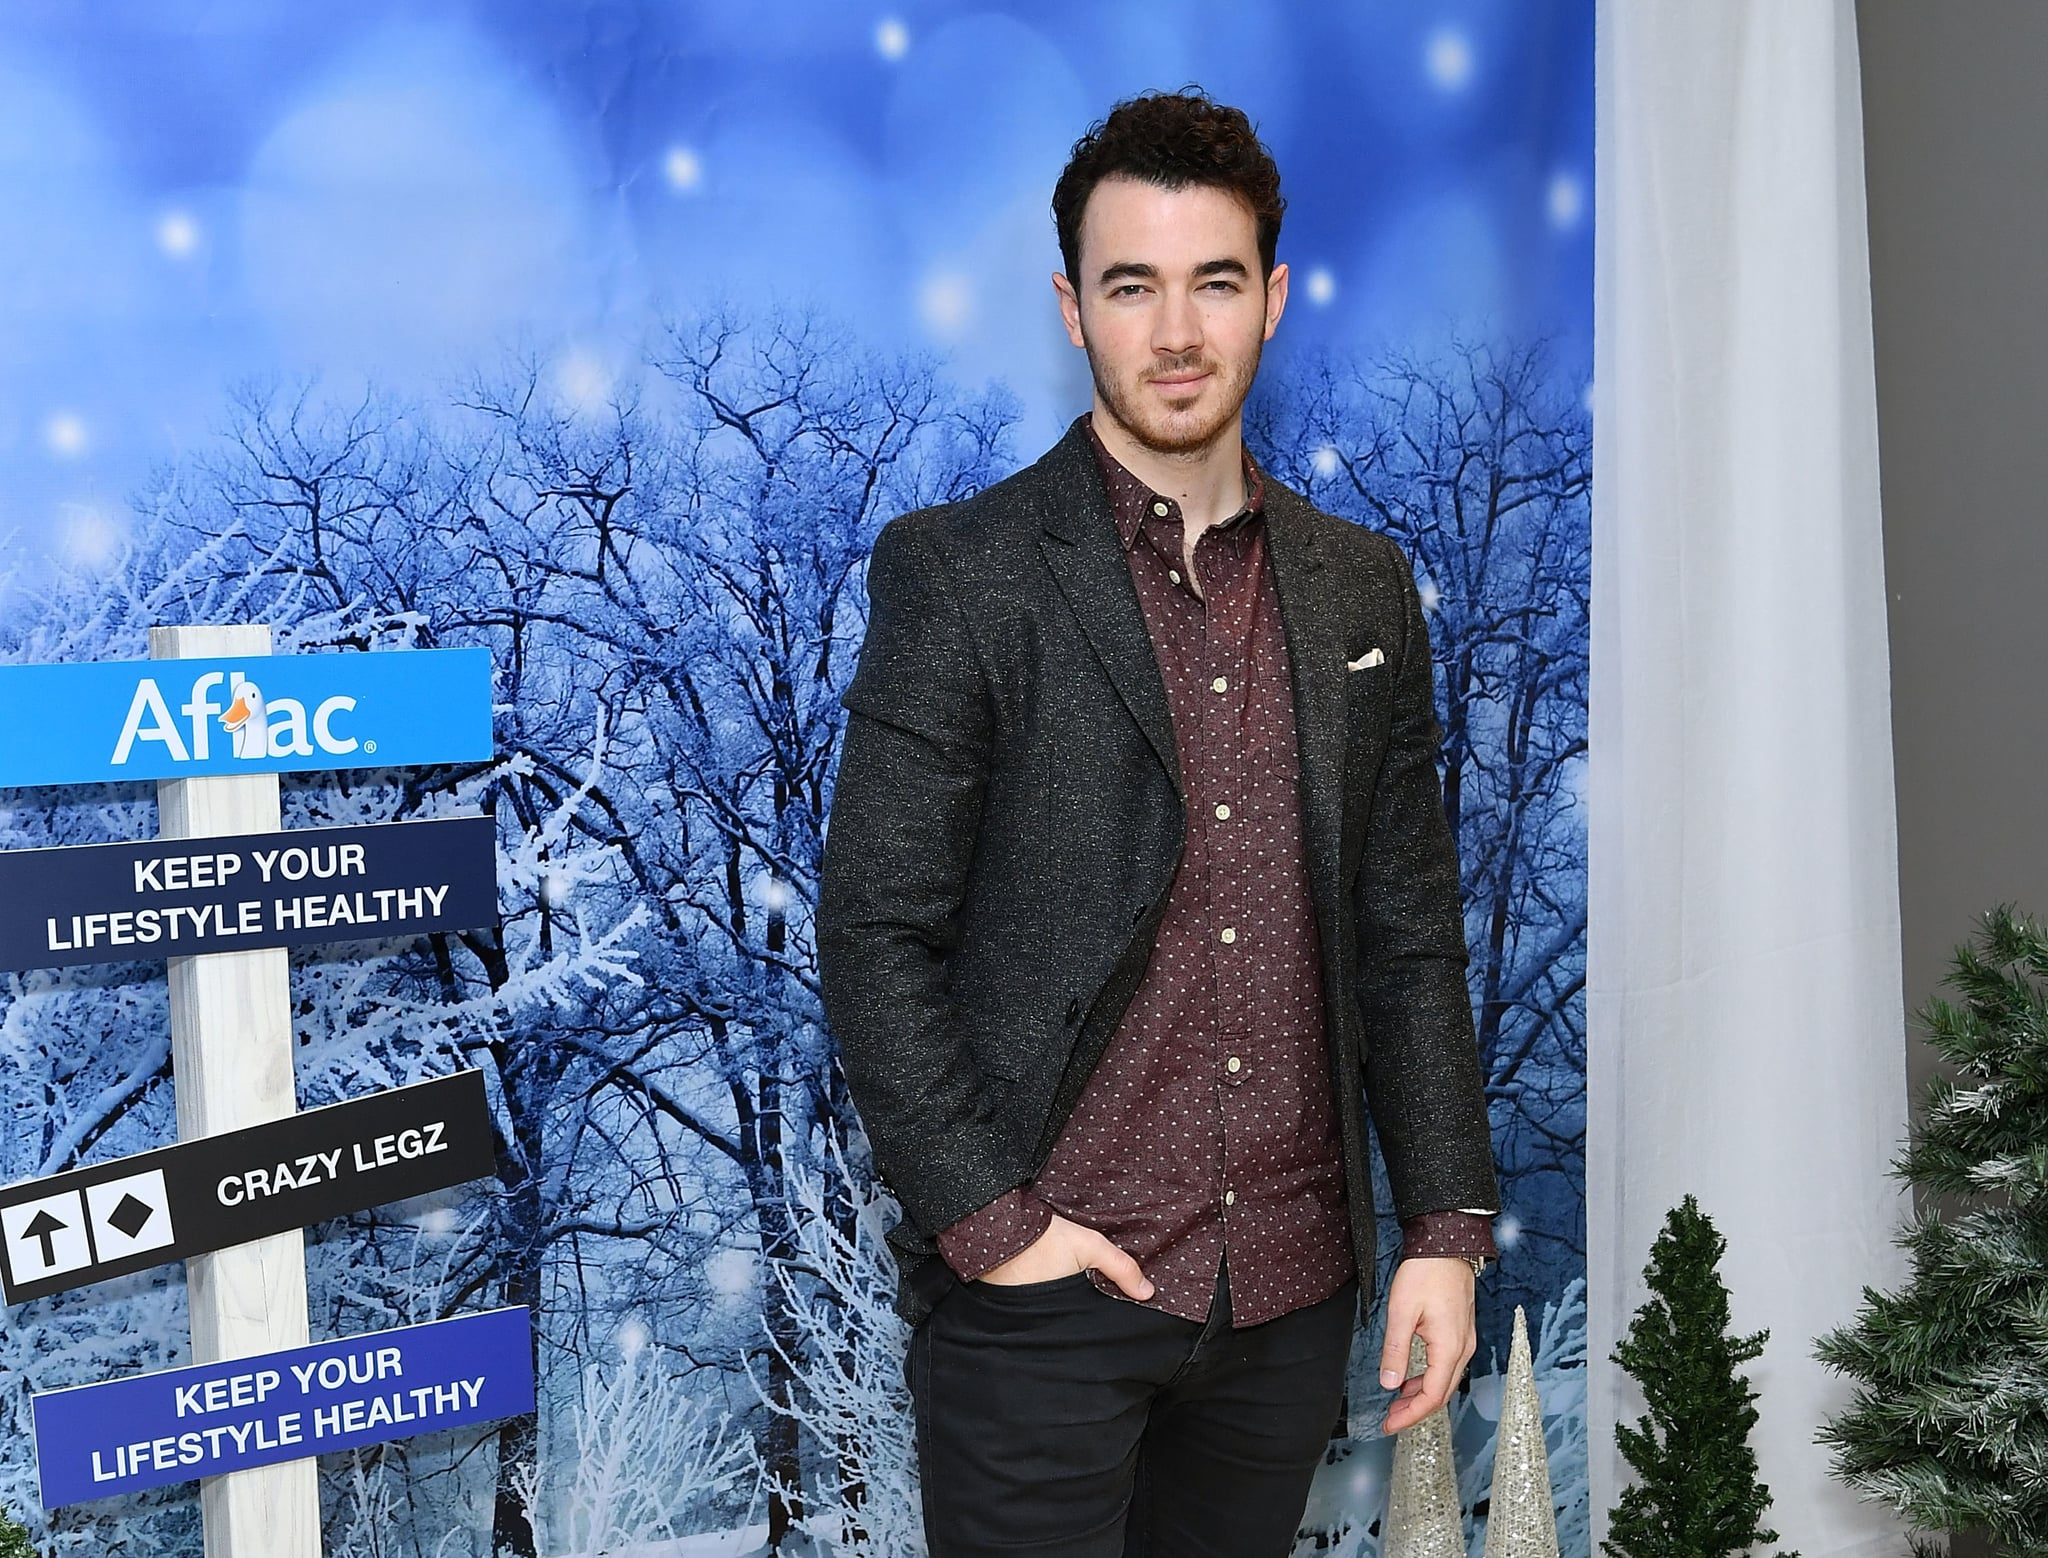 NEW YORK, NY - DECEMBER 19:  Kevin Jonas attends #AFLACHOLIDAYHELPERS campaign launch on December 19, 2016 in New York City.  (Photo by Slaven Vlasic/Getty Images)